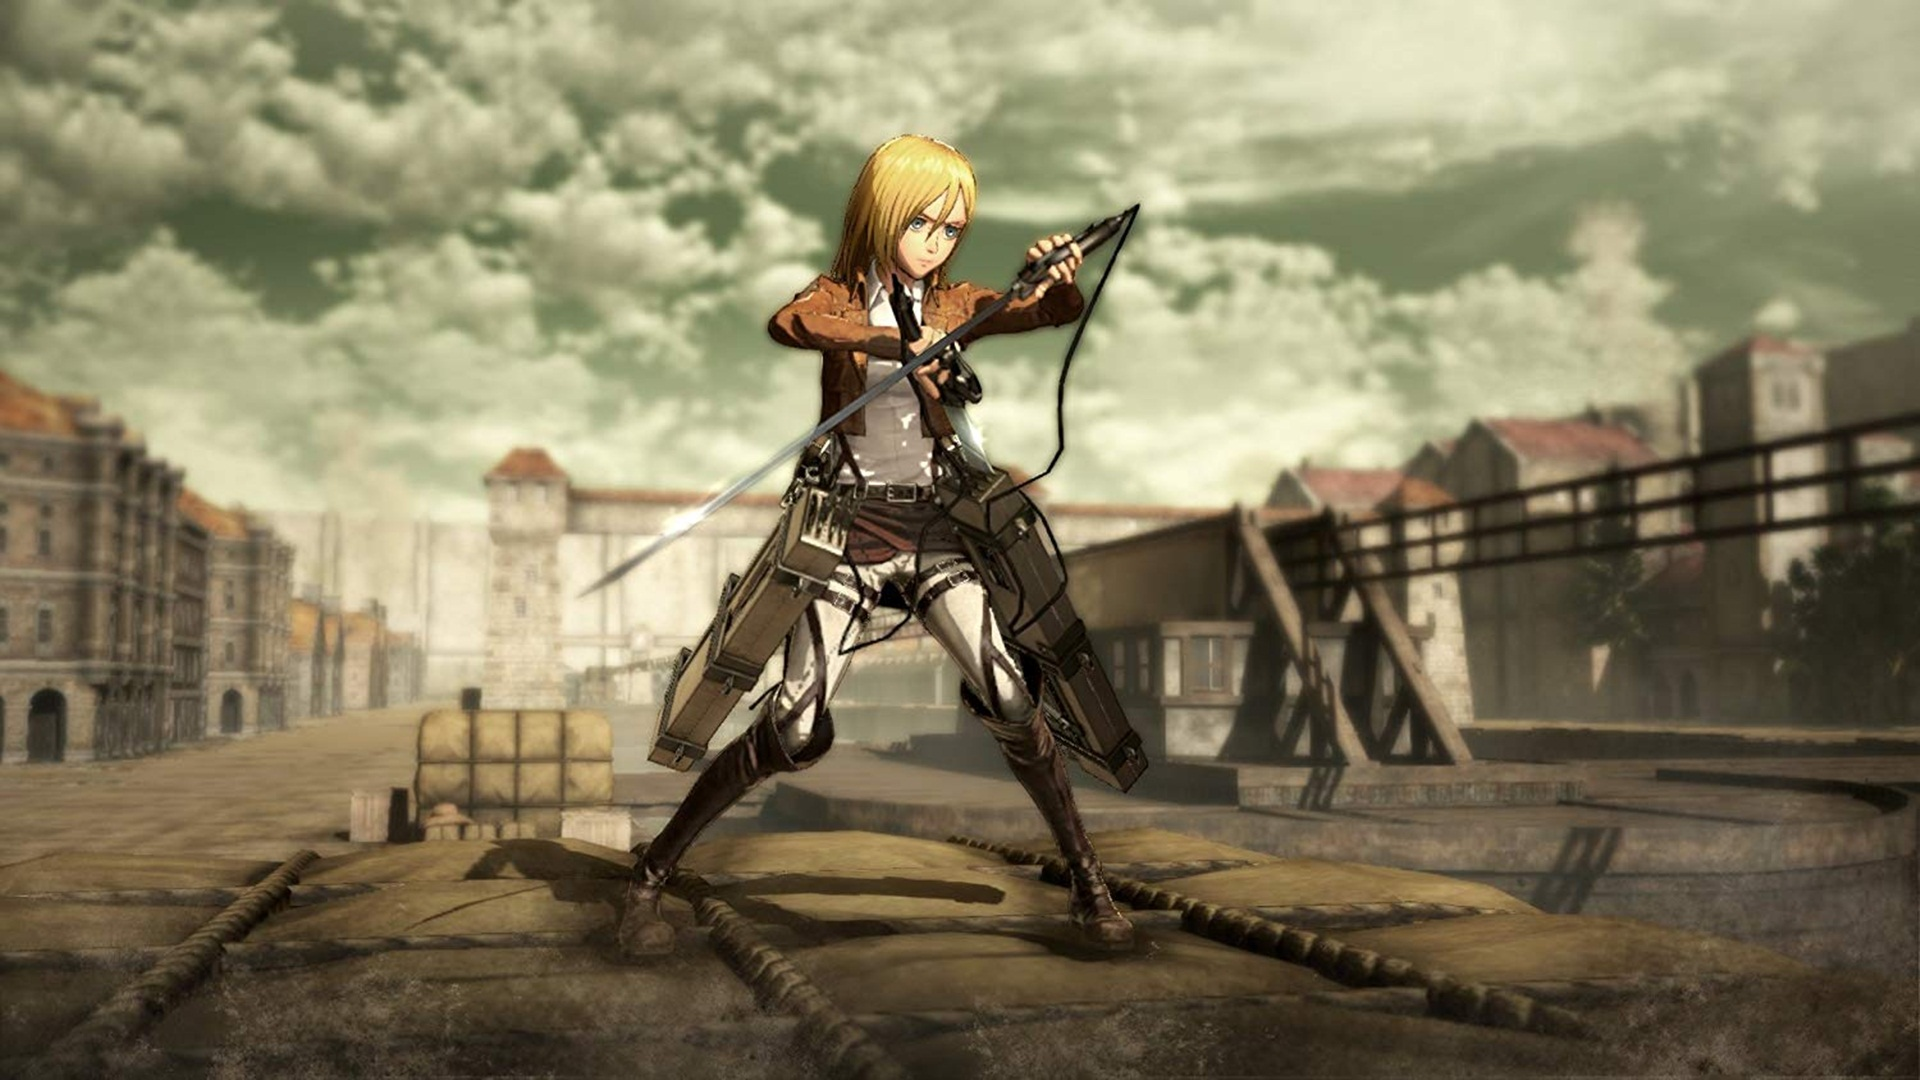 Attack On Titan Background Wallpaper Attack On Titan Wings Of Freedom Mods 3141020 Hd Wallpaper Backgrounds Download